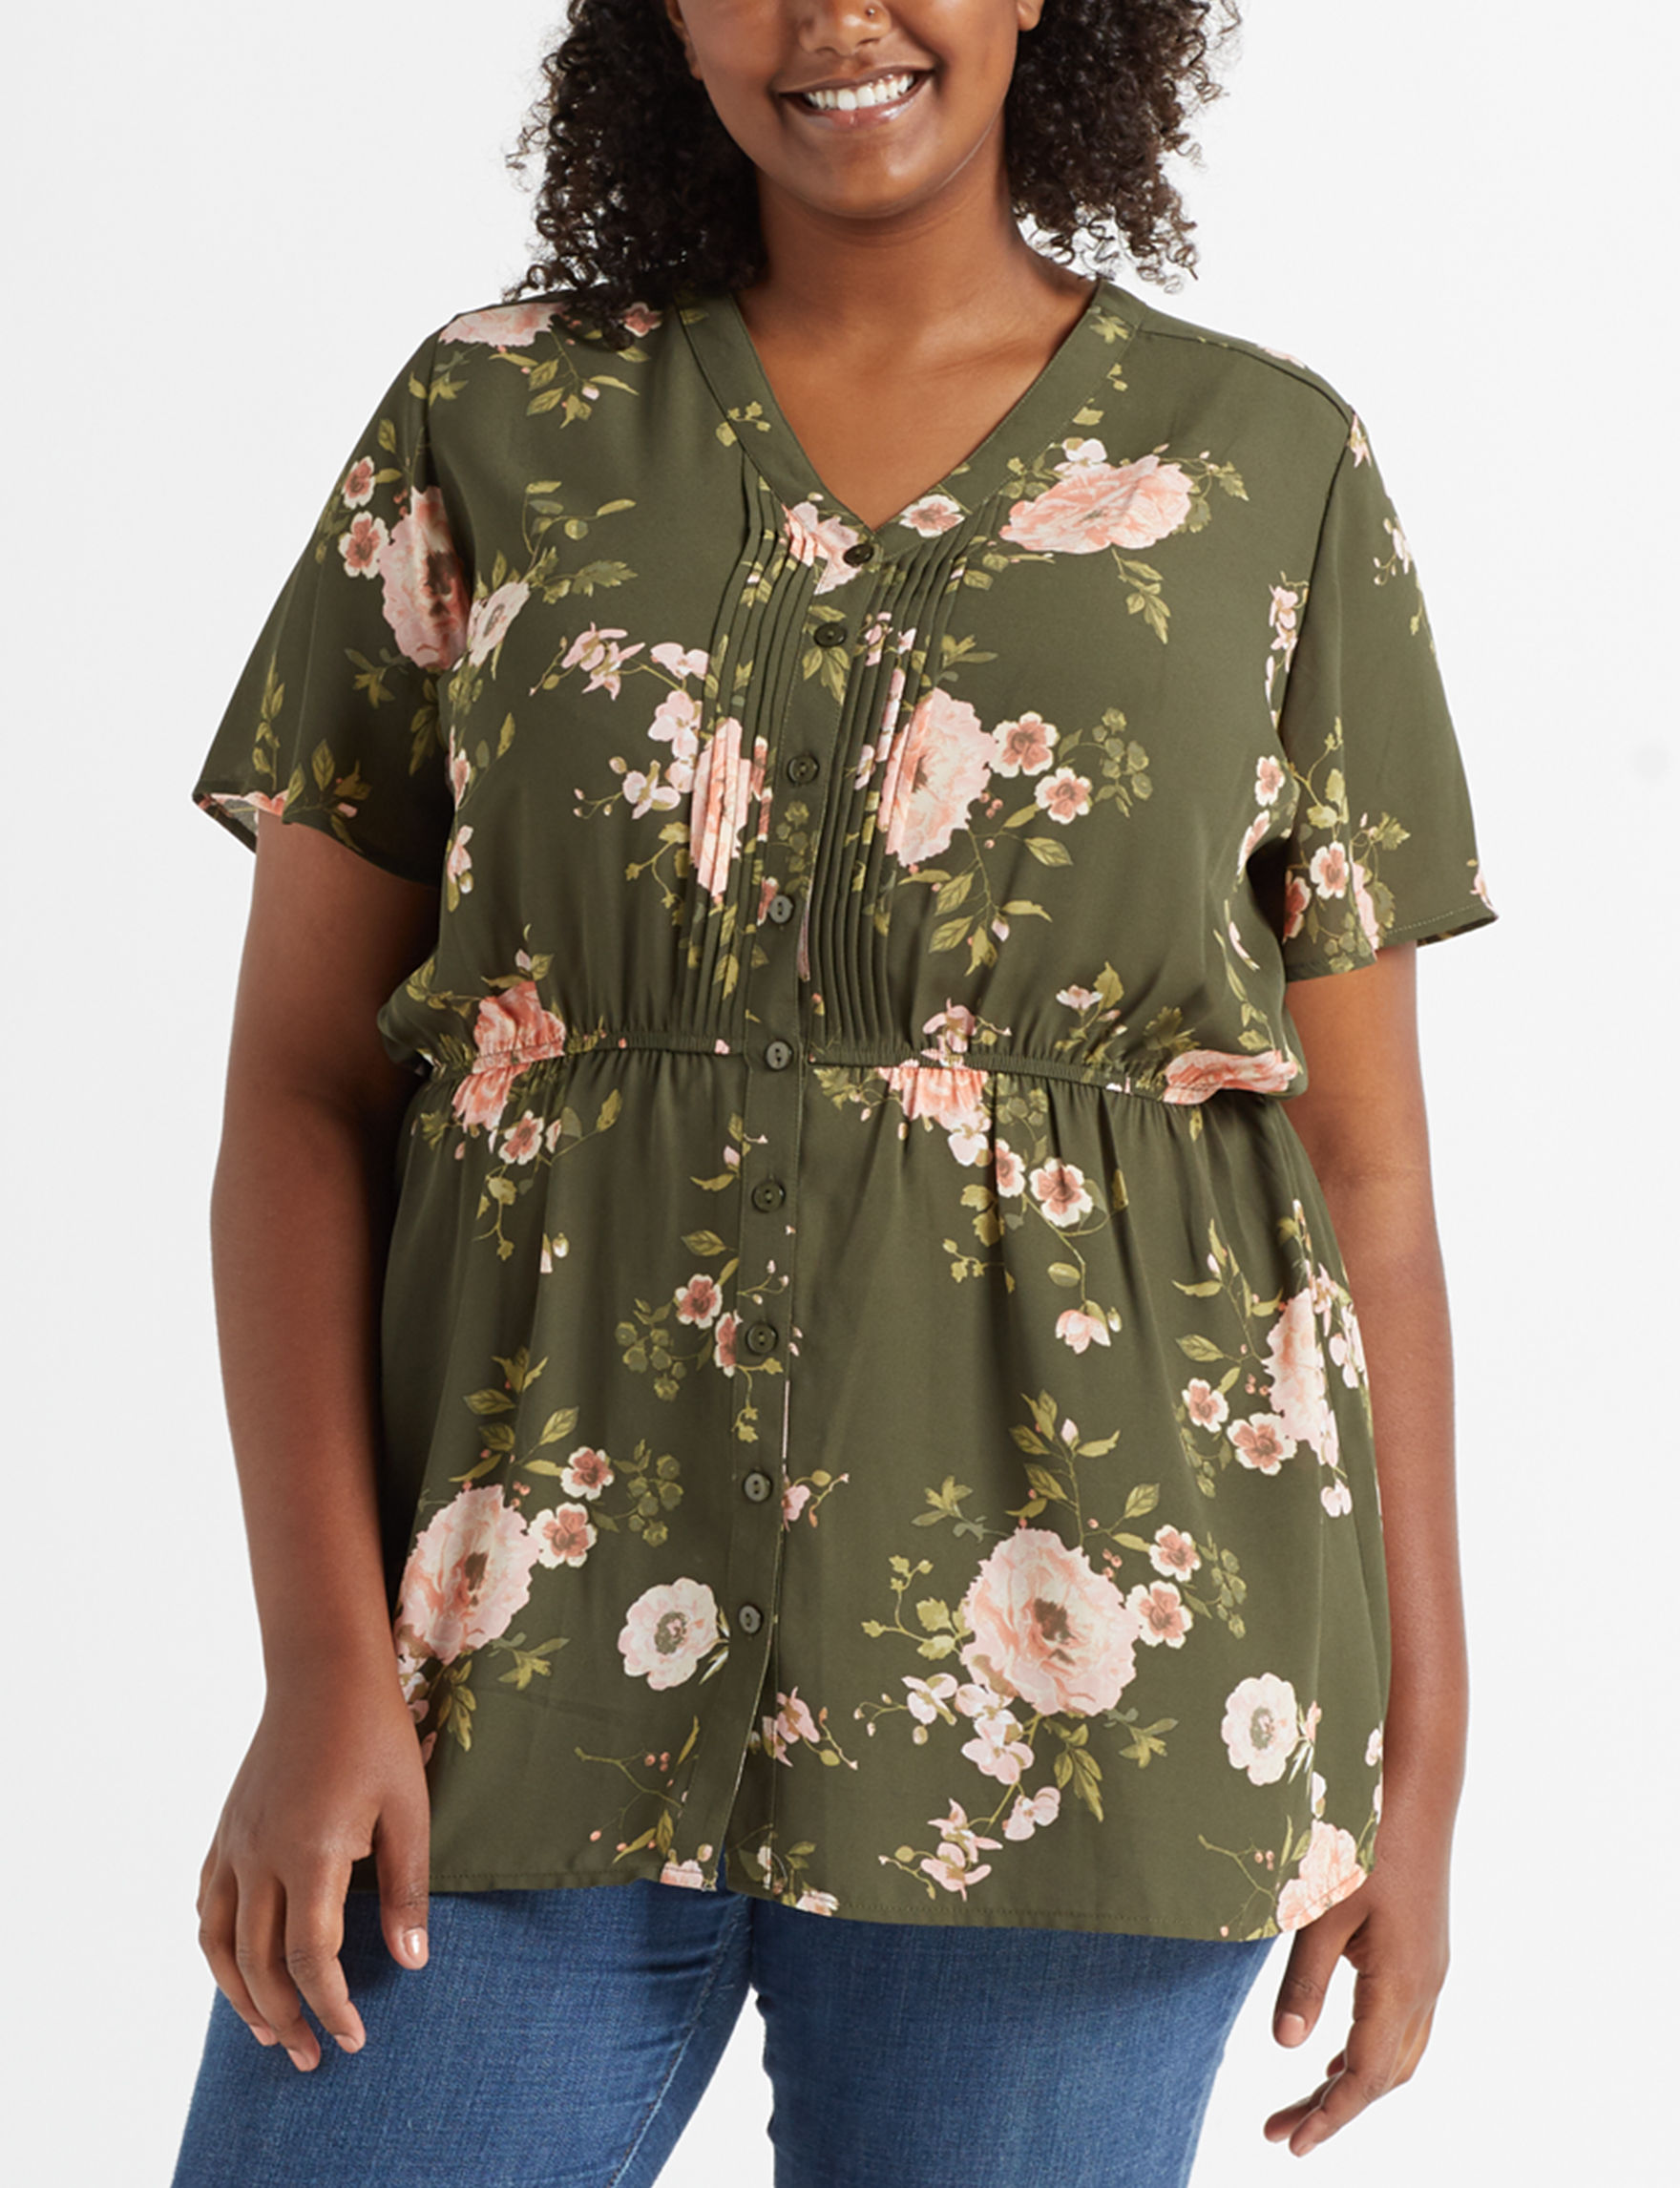 Justify Olive Floral Shirts & Blouses